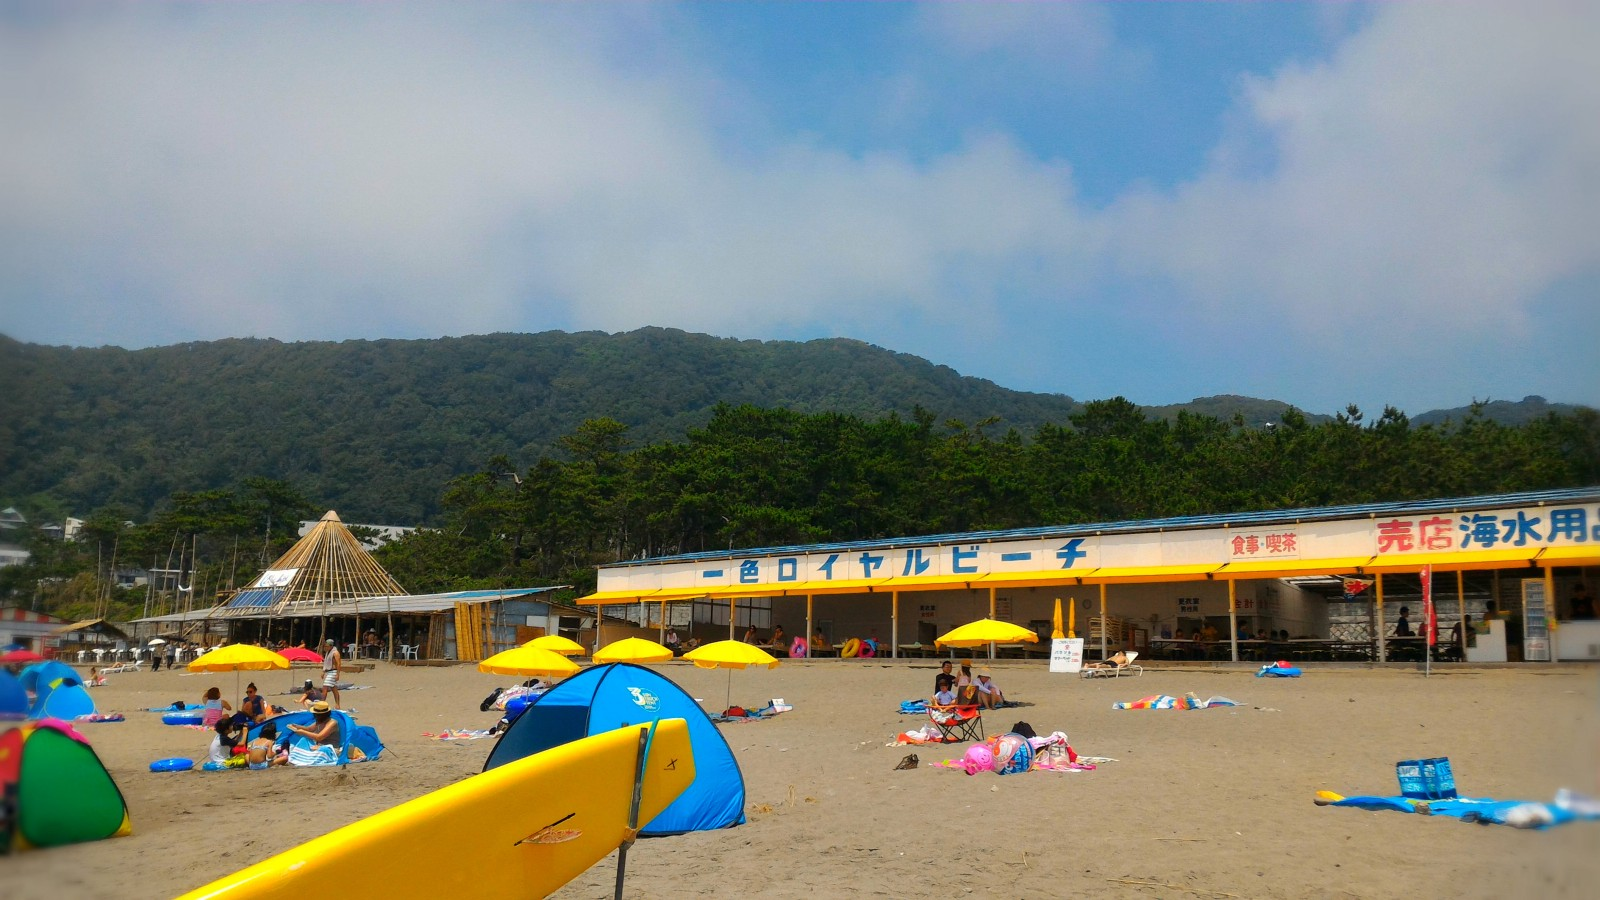 Isshiki Beach offering relaxing and chilled atmosphere